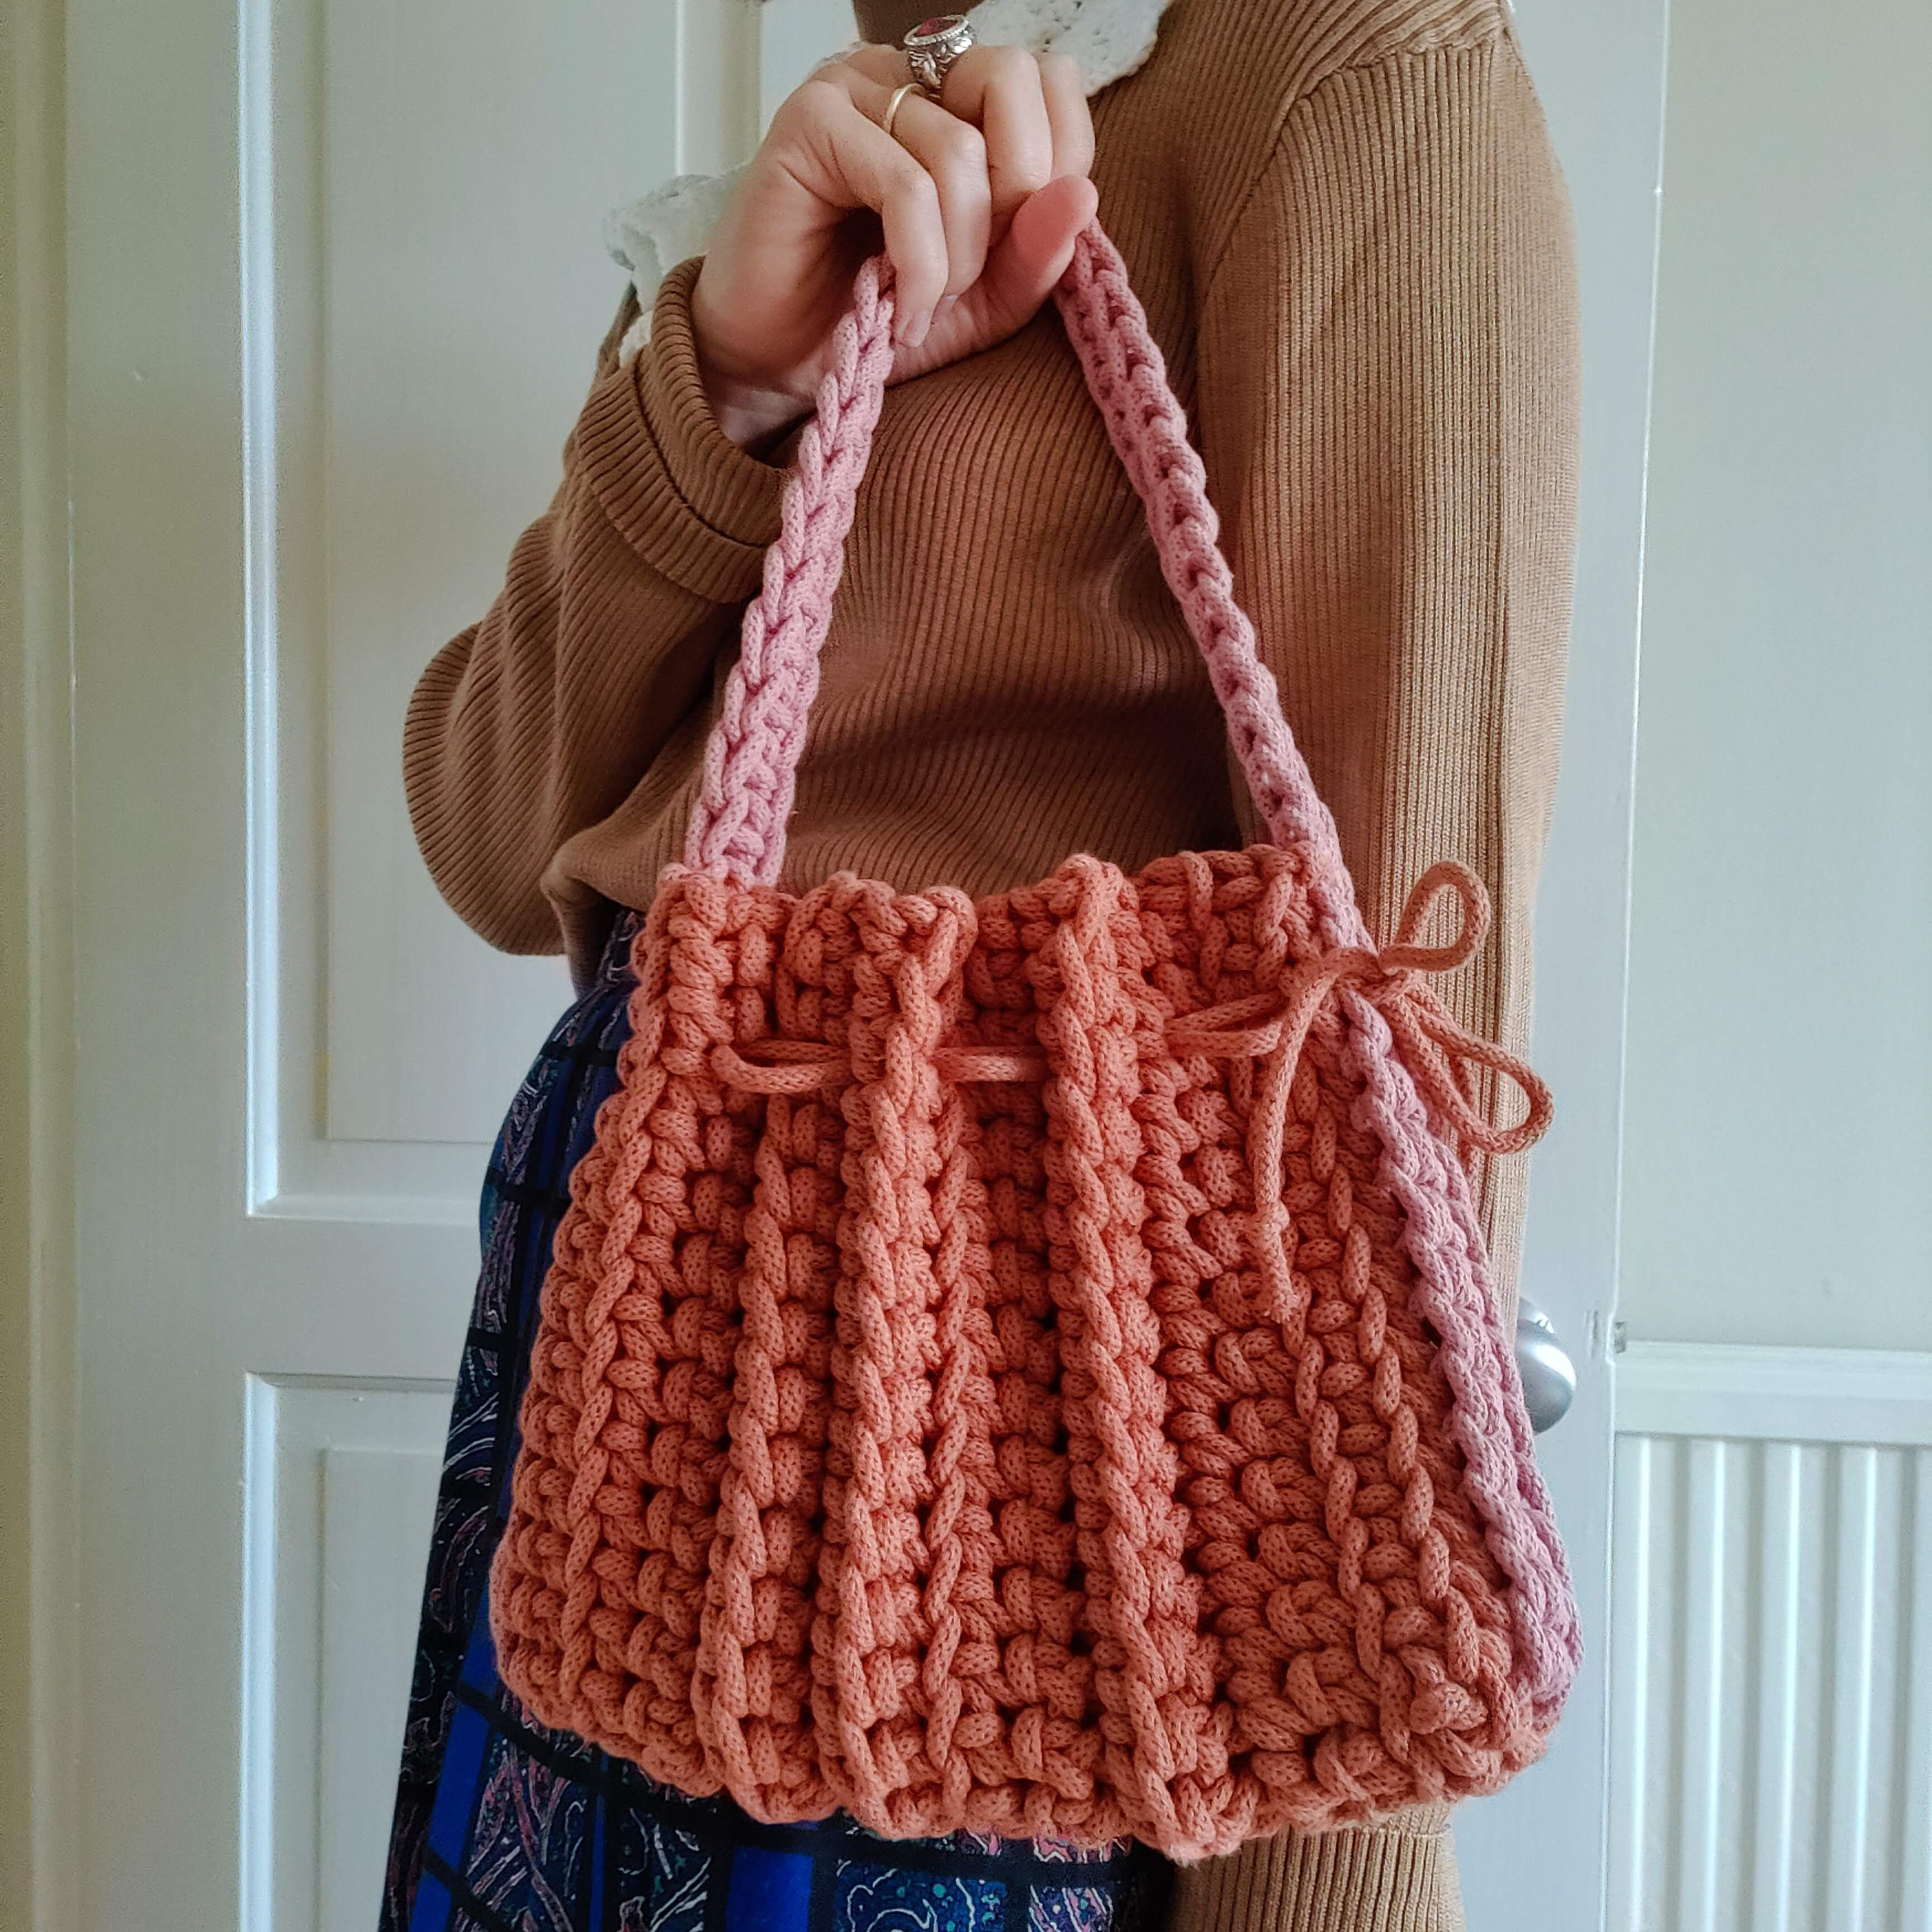 Forget-me-knot bags